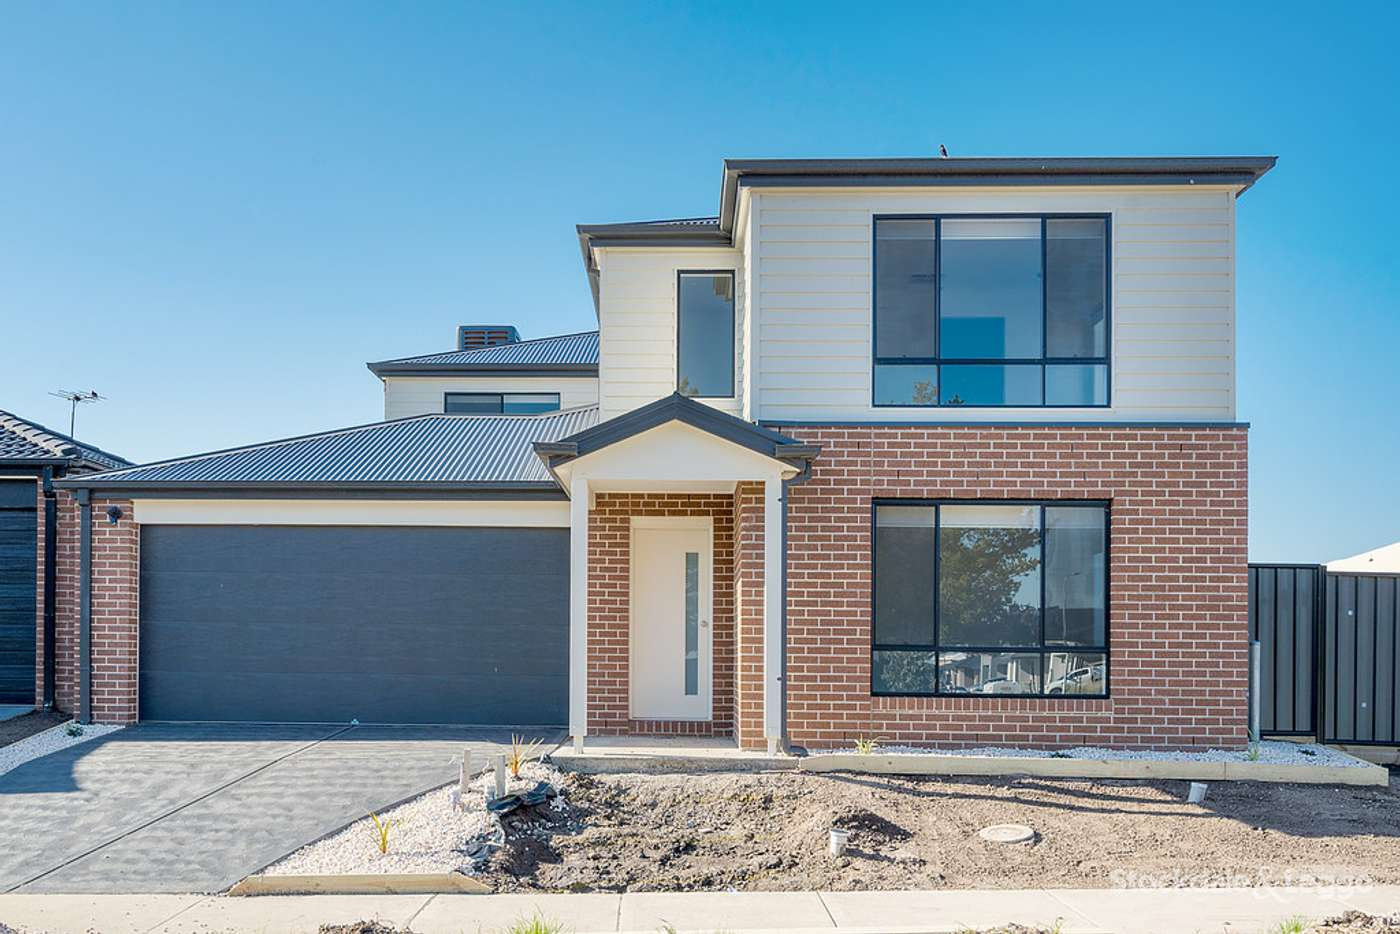 Main view of Homely house listing, 5 Prestige Drive, Kalkallo VIC 3064